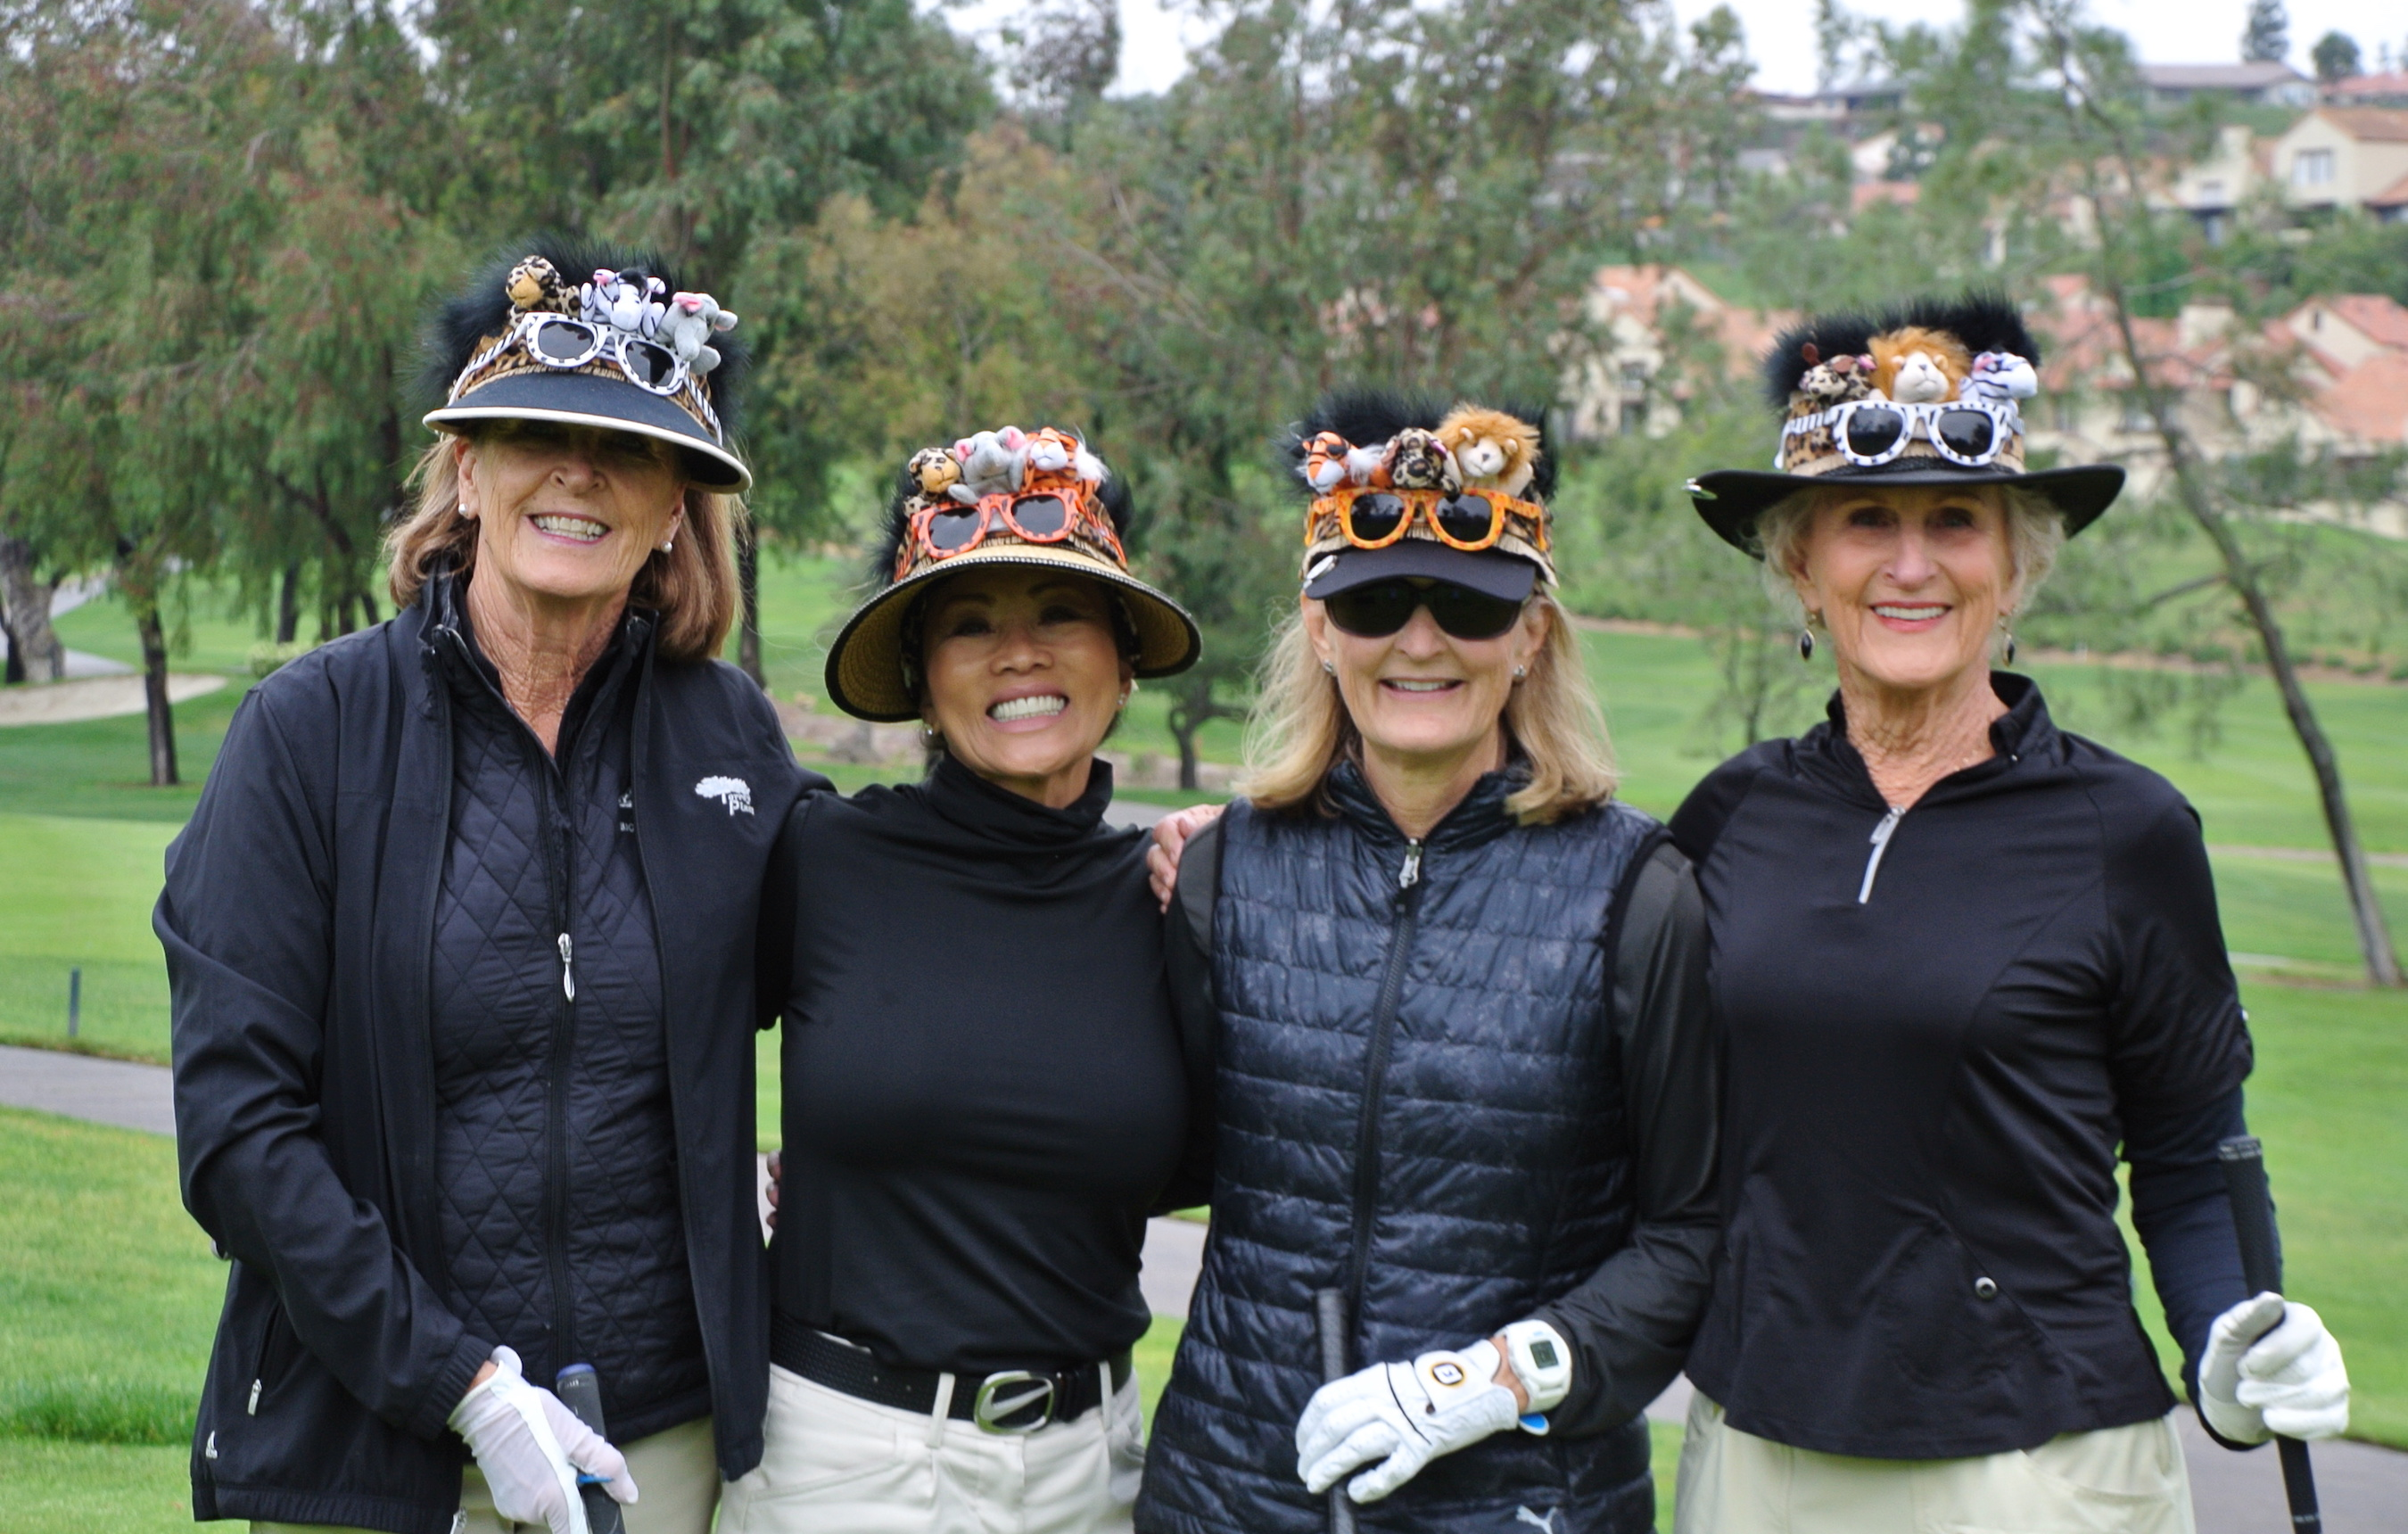 Cathy Jorgensen, Annie Governski, Kathy Kuhn and Wanna Caverly wear theme-related hatbands created by Jorgensen